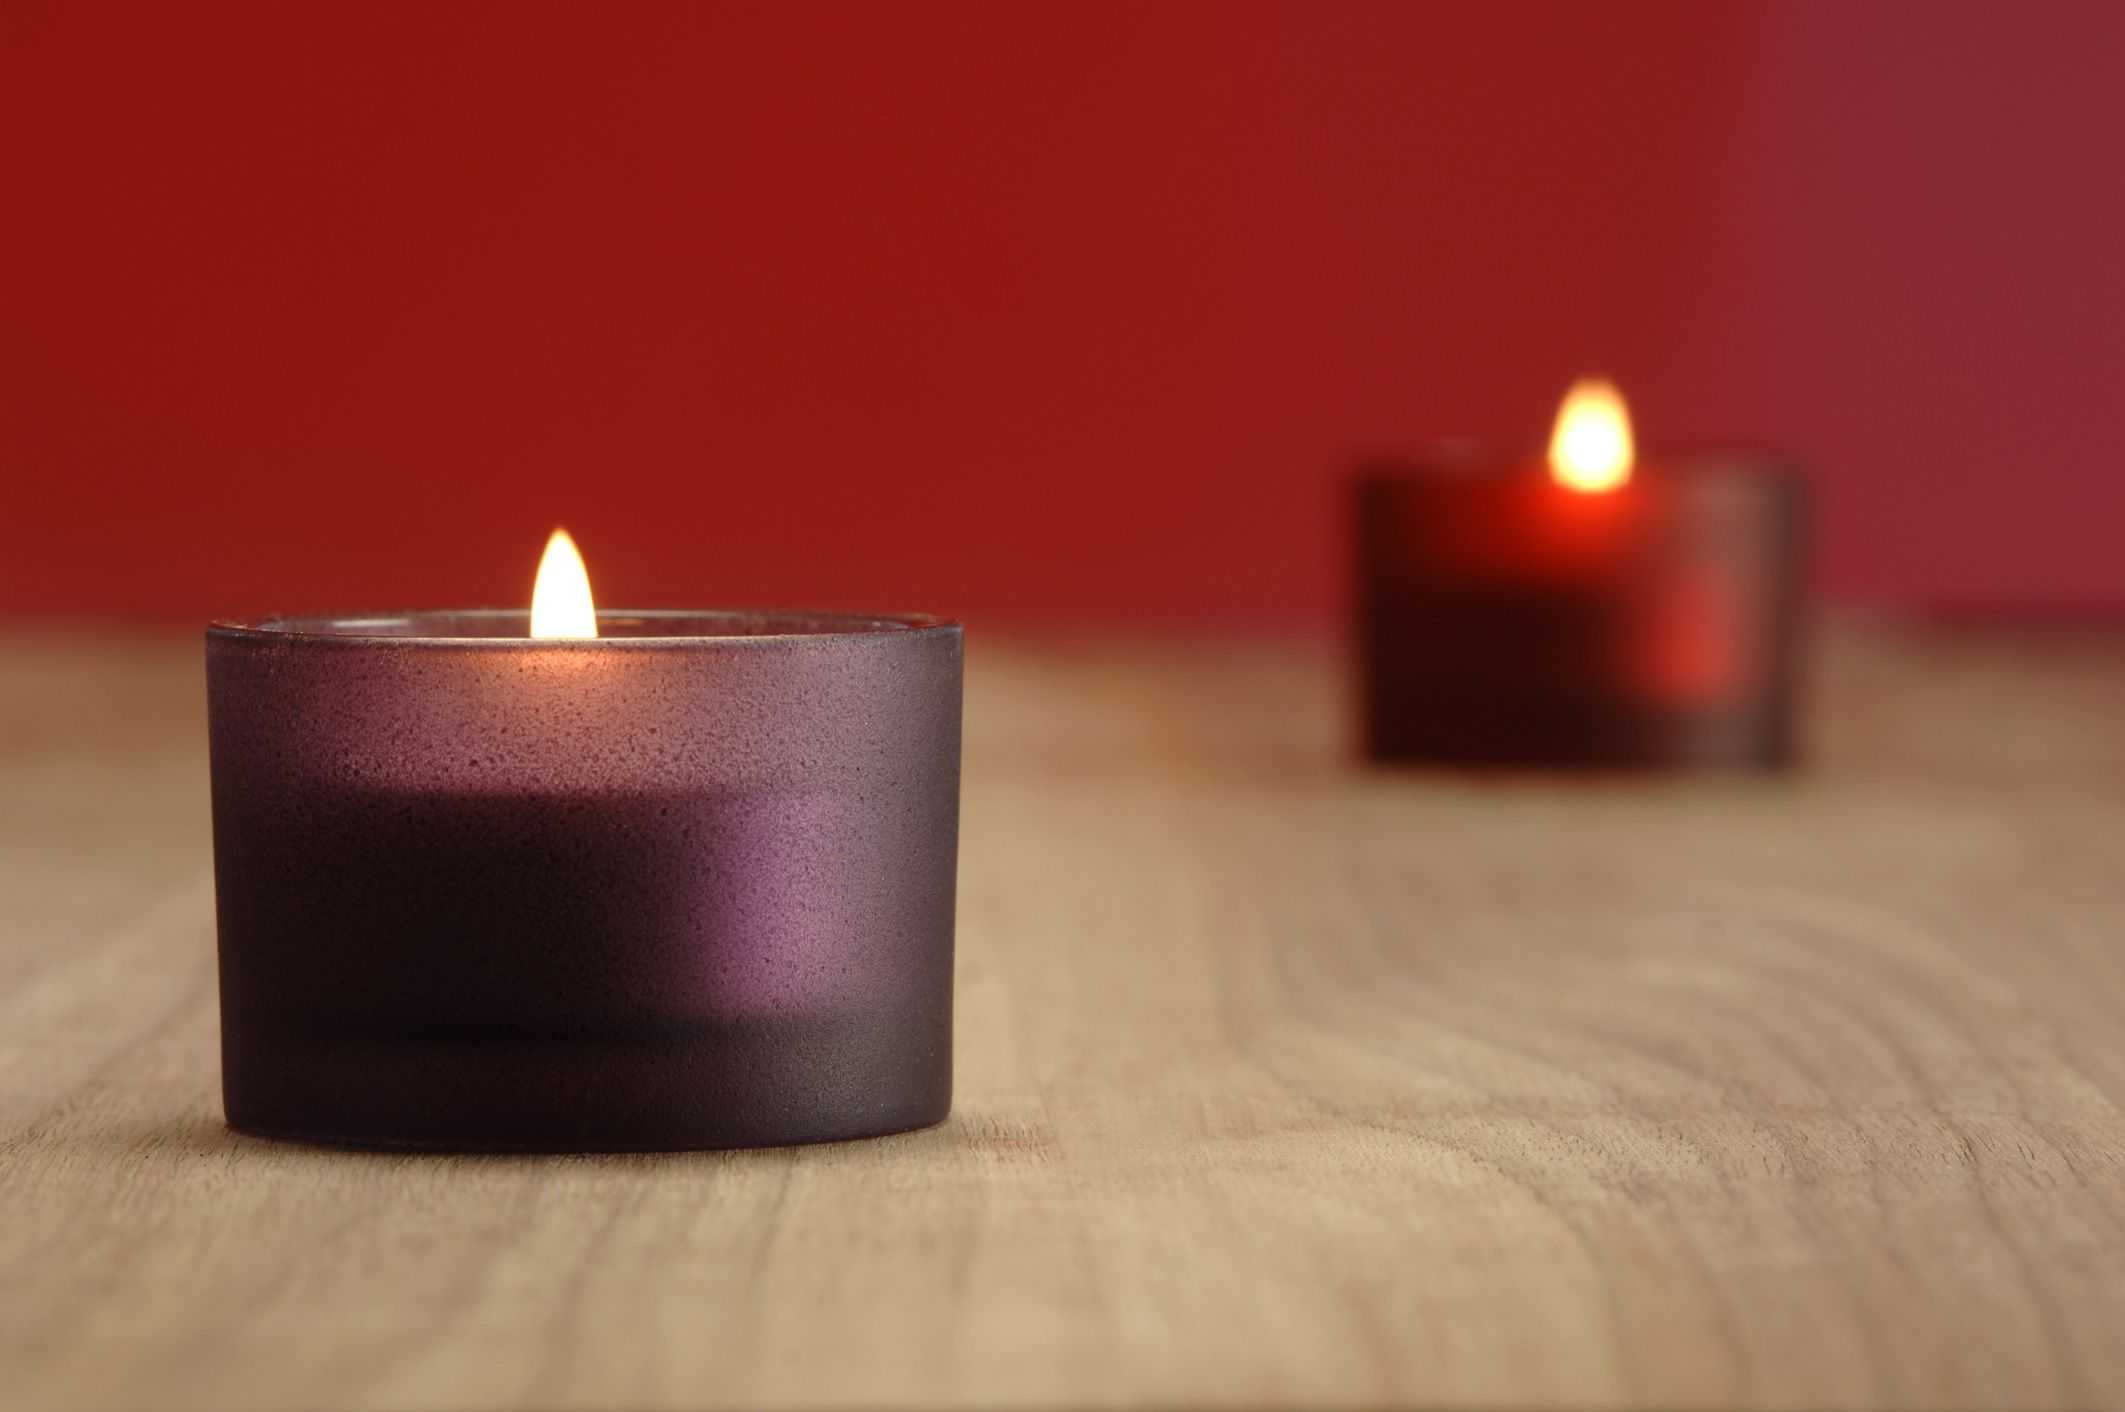 red and purple candles with red wall in the blurred background